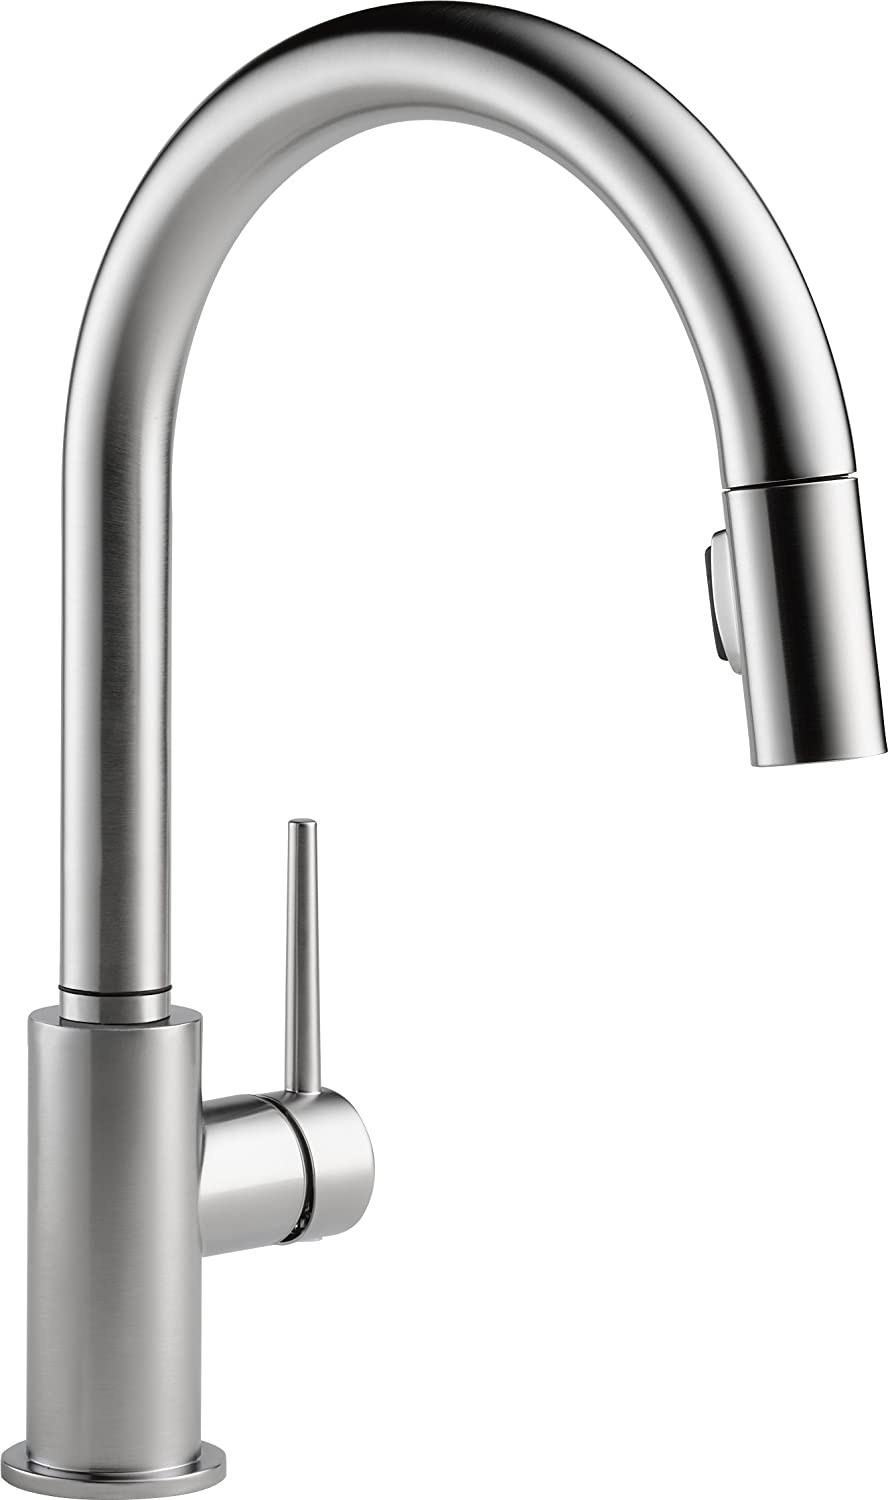 Delta 9159 best pull down kitchen faucet